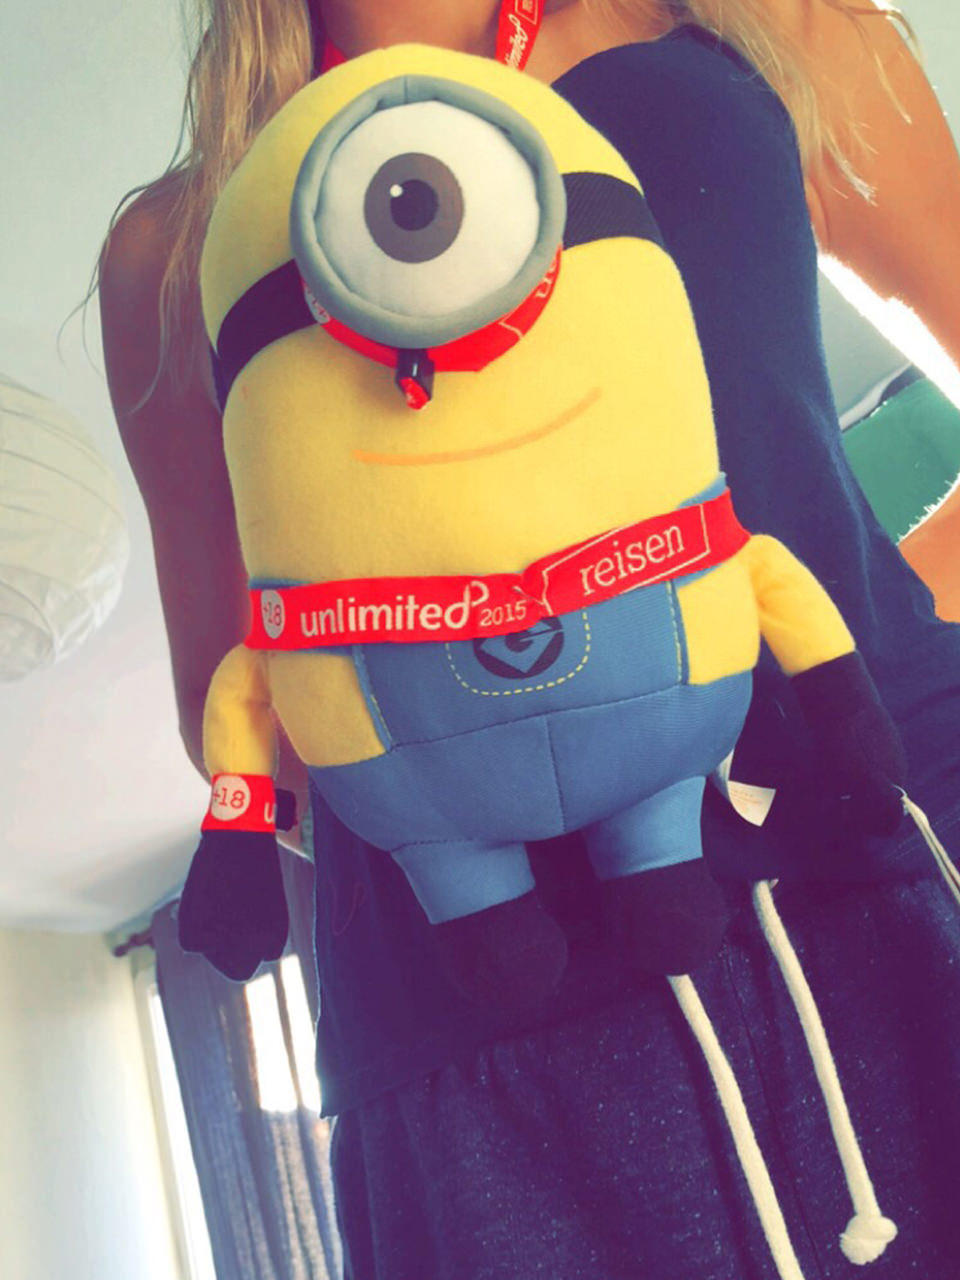 unlimited minion